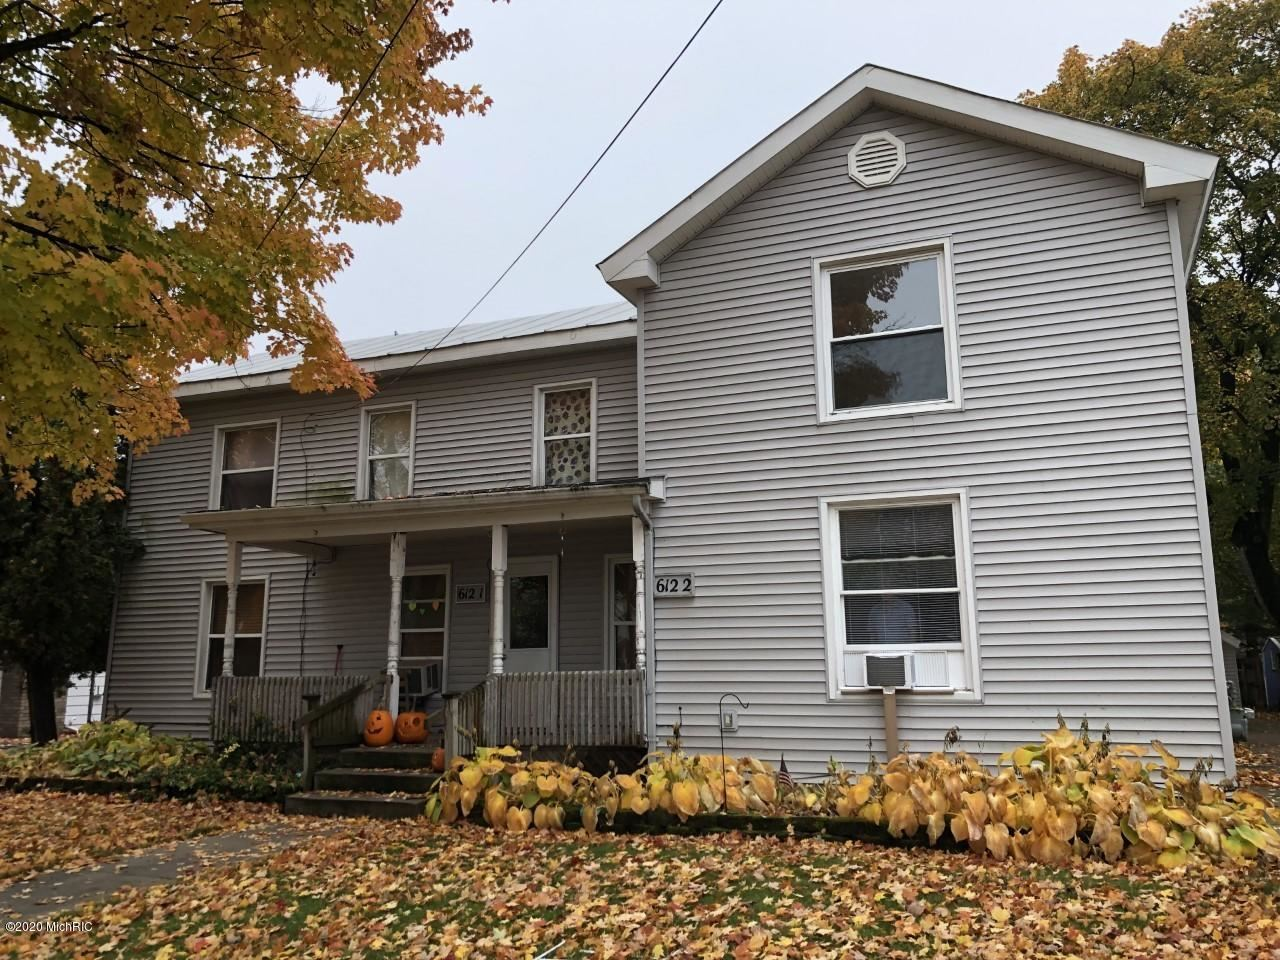 612 S Lincoln Ave Avenue, Lakeview, MI 48850 - MLS#: 20044580